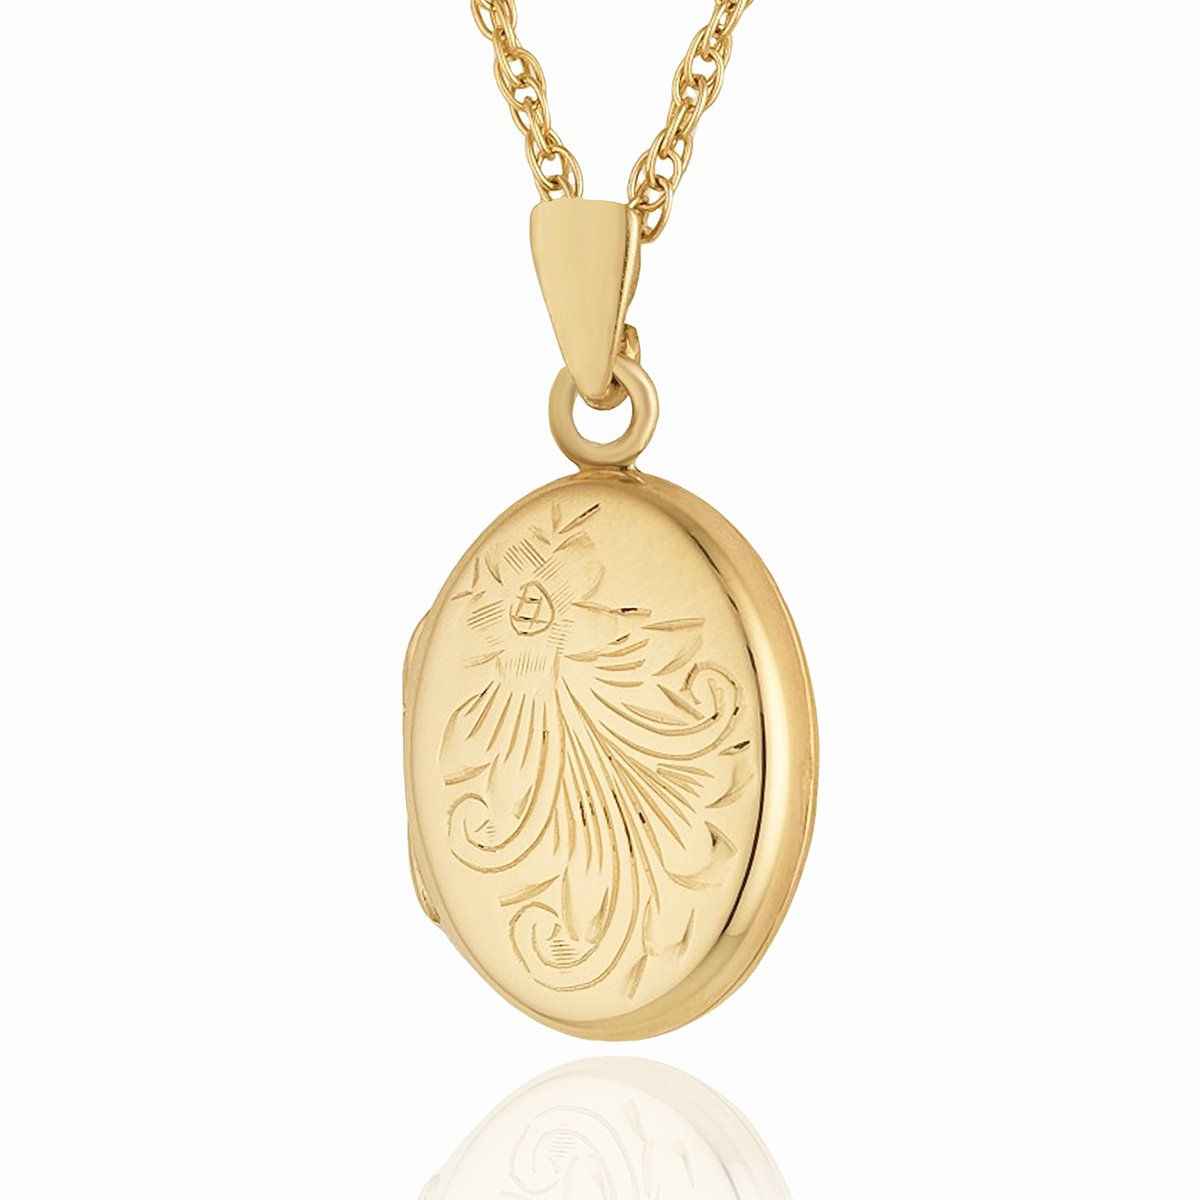 Product title: Hand Engraved Floral Petite Oval, product type: Locket